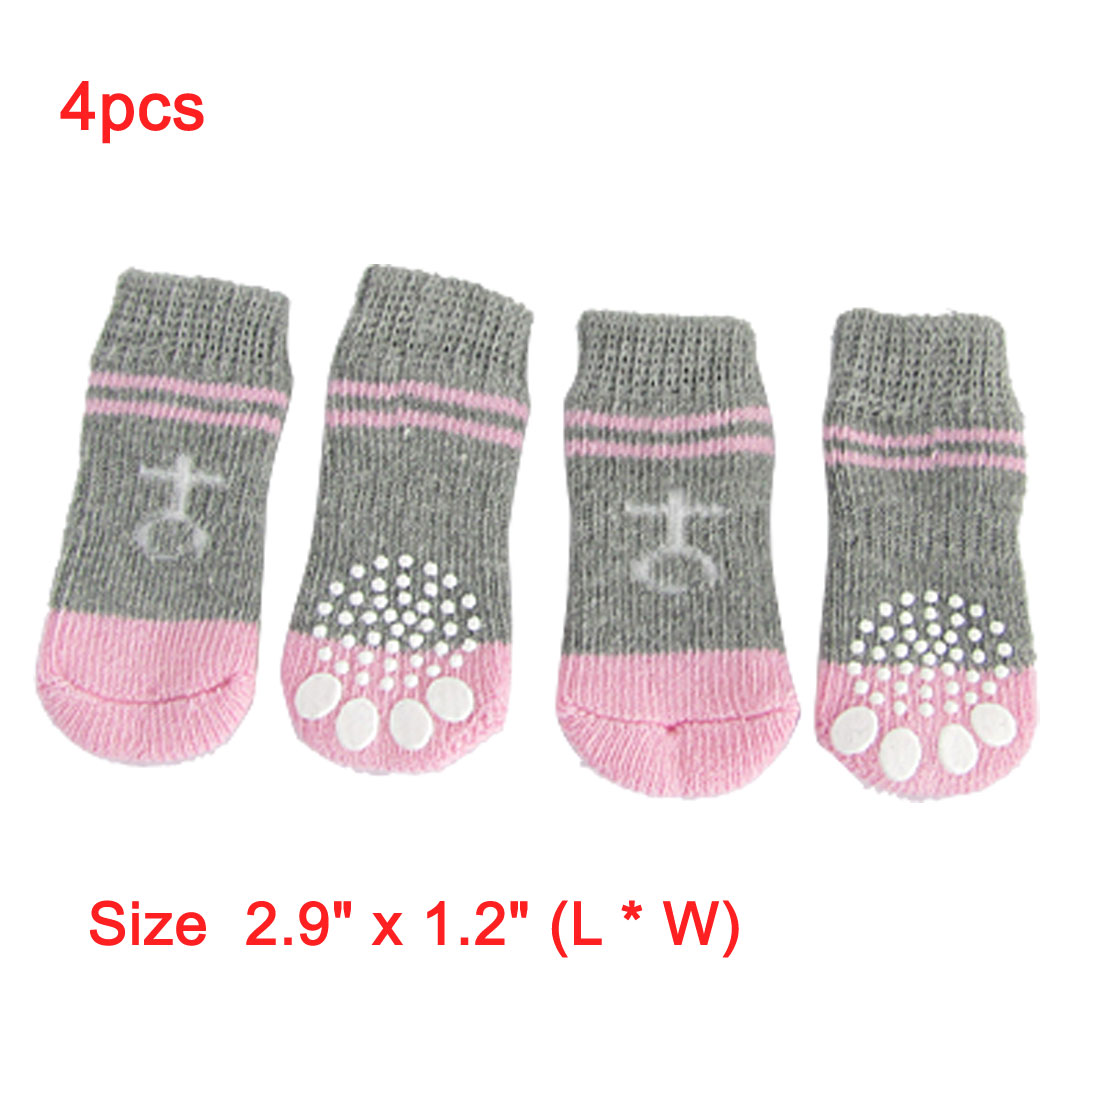 Unique Bargains 4 PCS Dog Puppy Nonslip Socks Pet Supplies Pink Gray